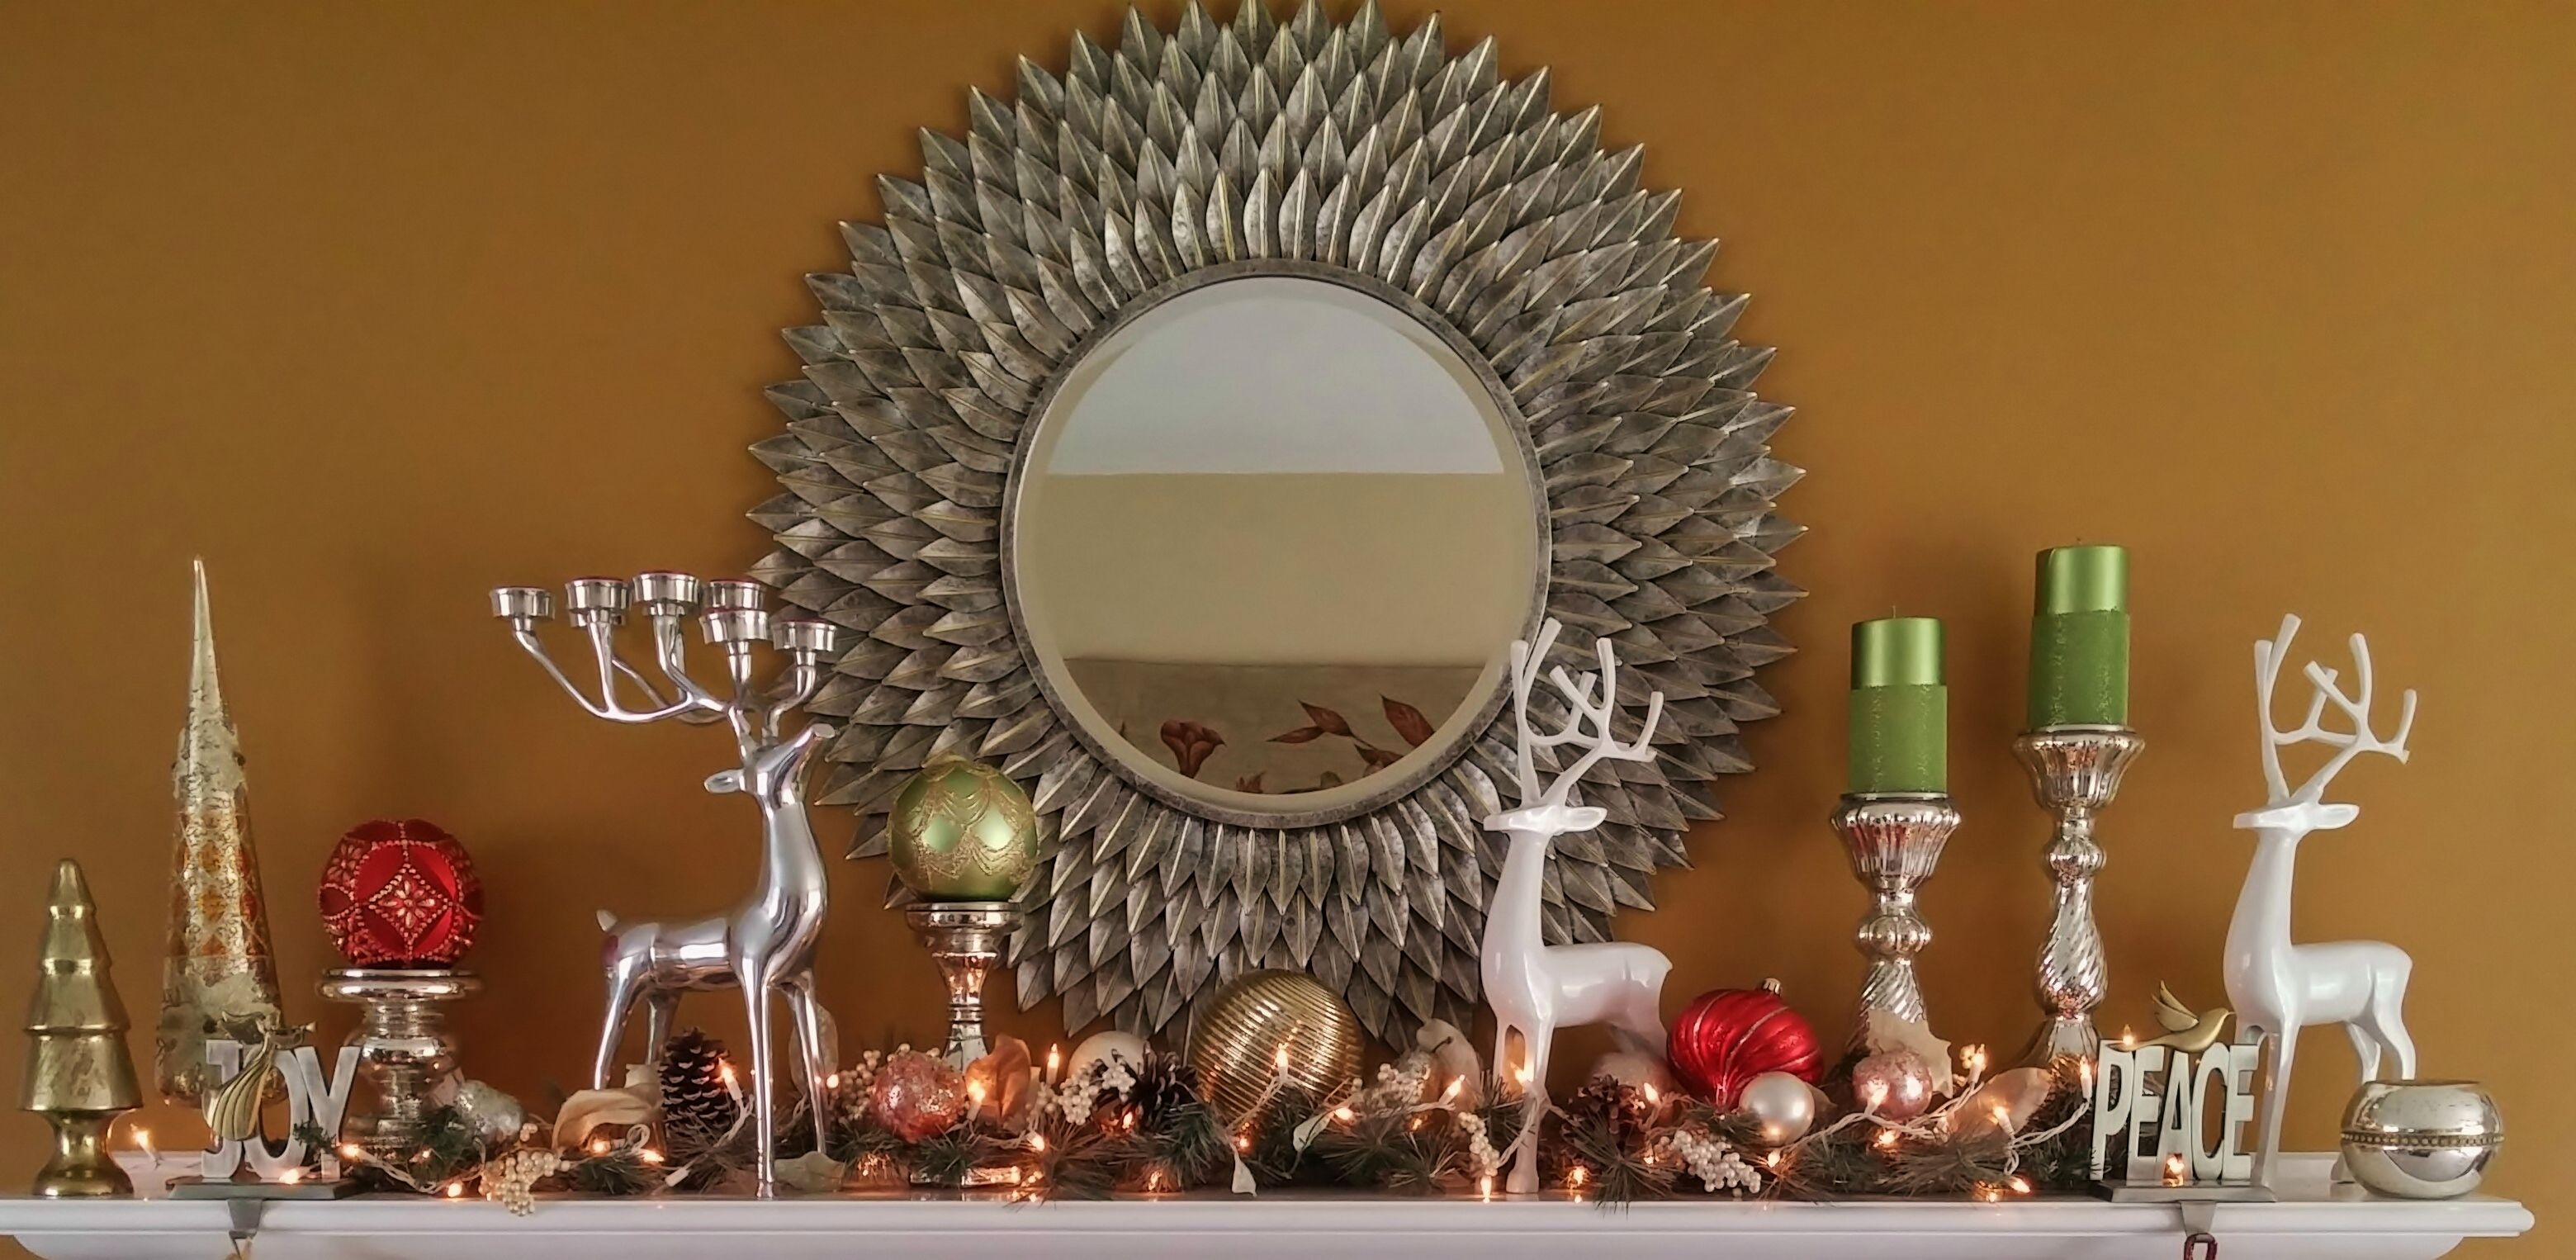 Our Christmas Mantel 2014 Reindeers Are From Home Goods &